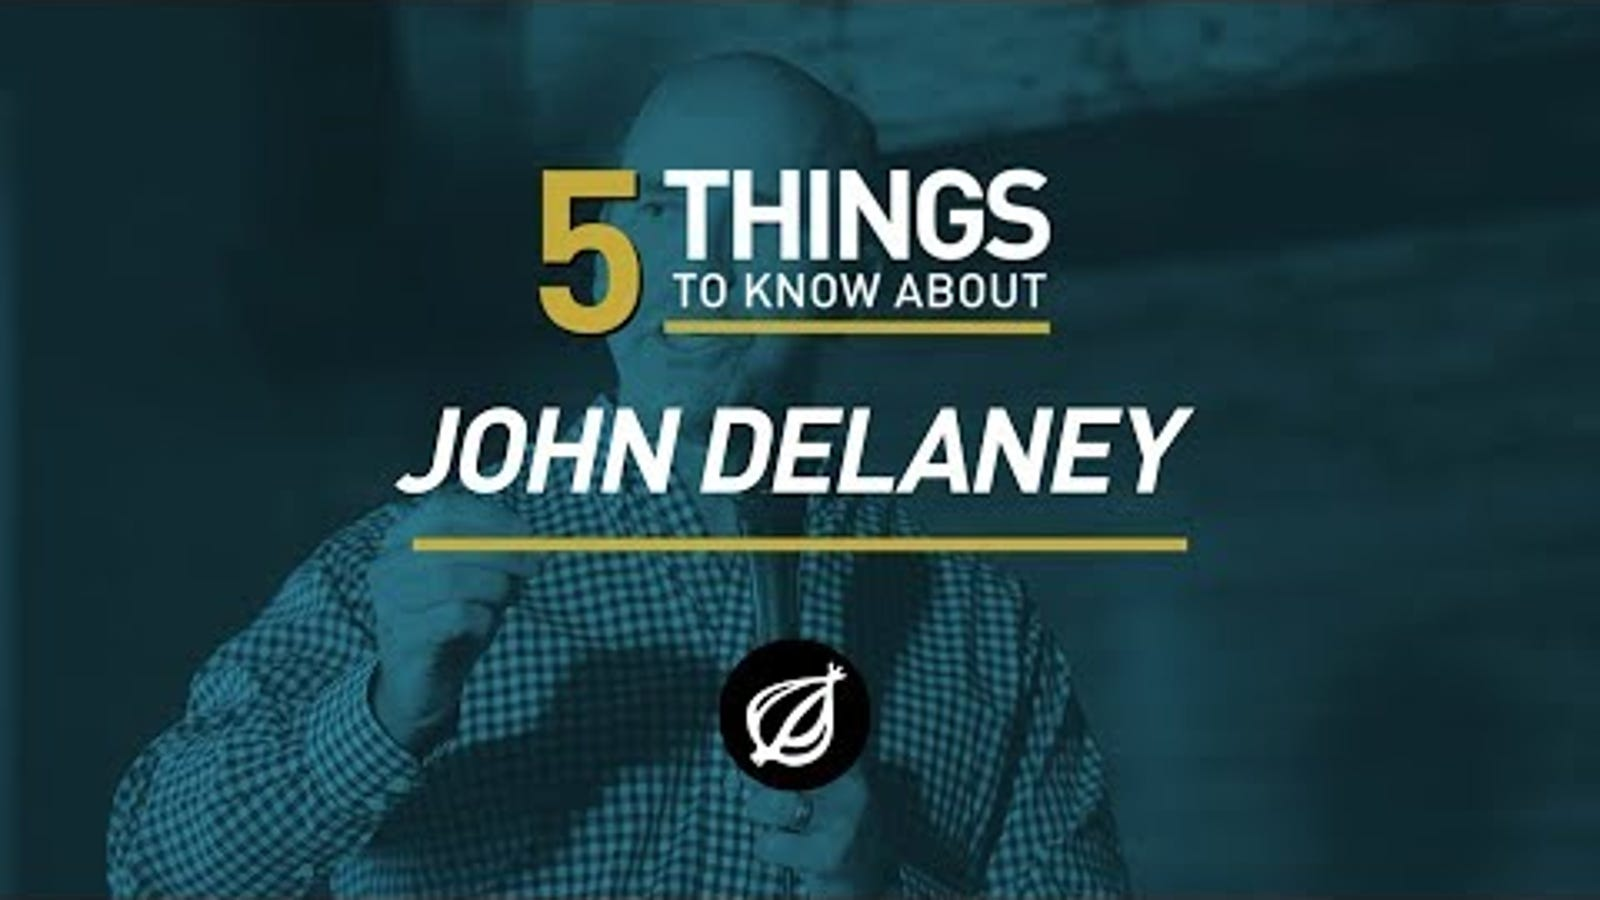 5 Things To Know About John Delaney